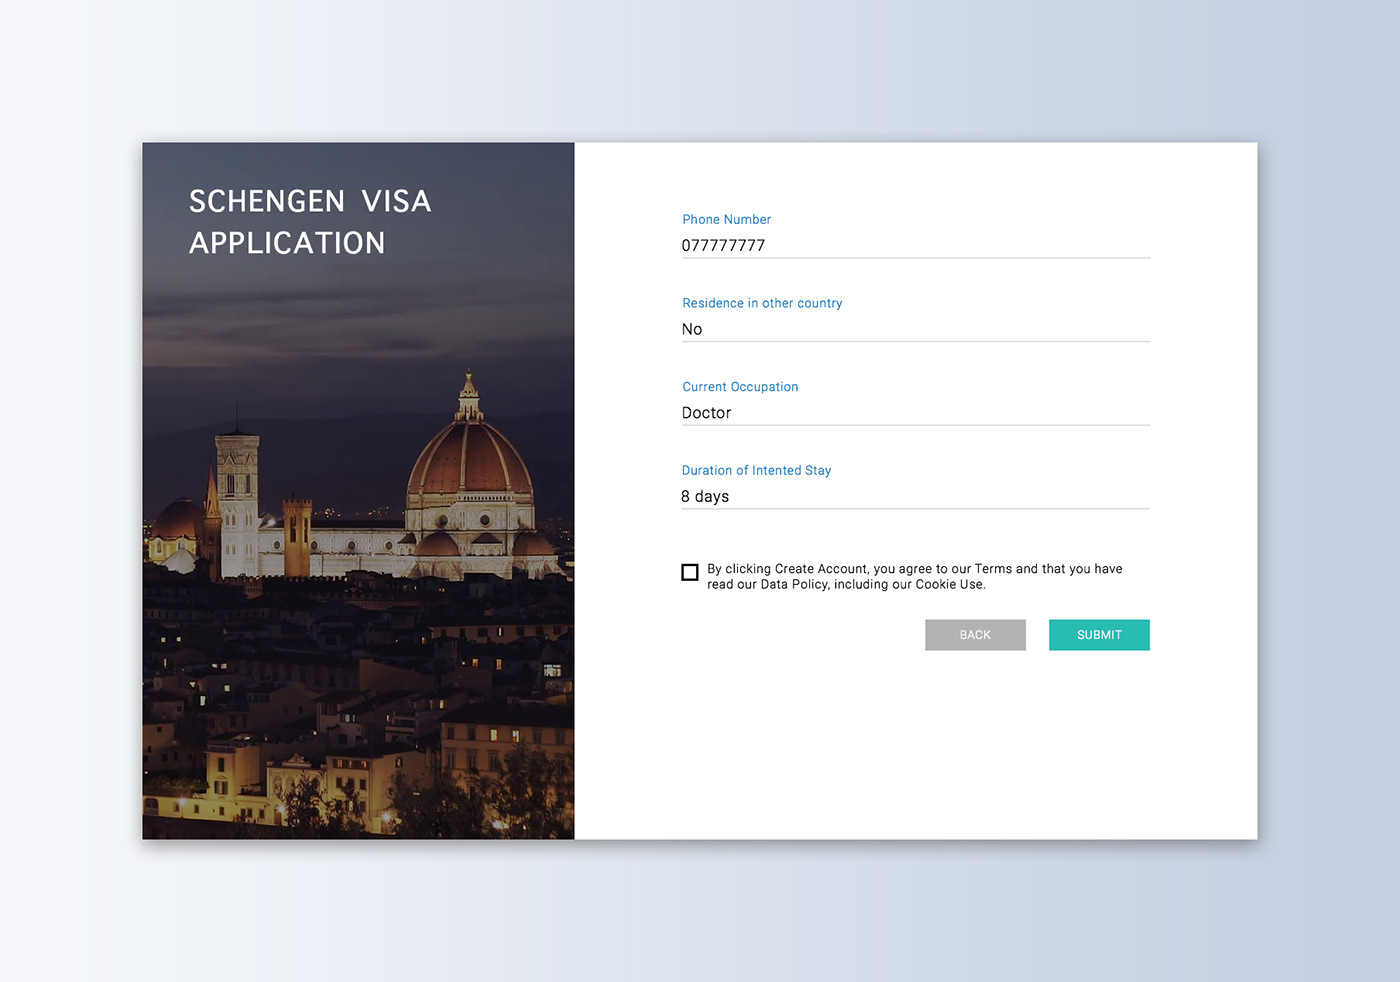 da29ae64902079.5ae18365365f1 Schengen Visa Application Form Download English on requirements for,